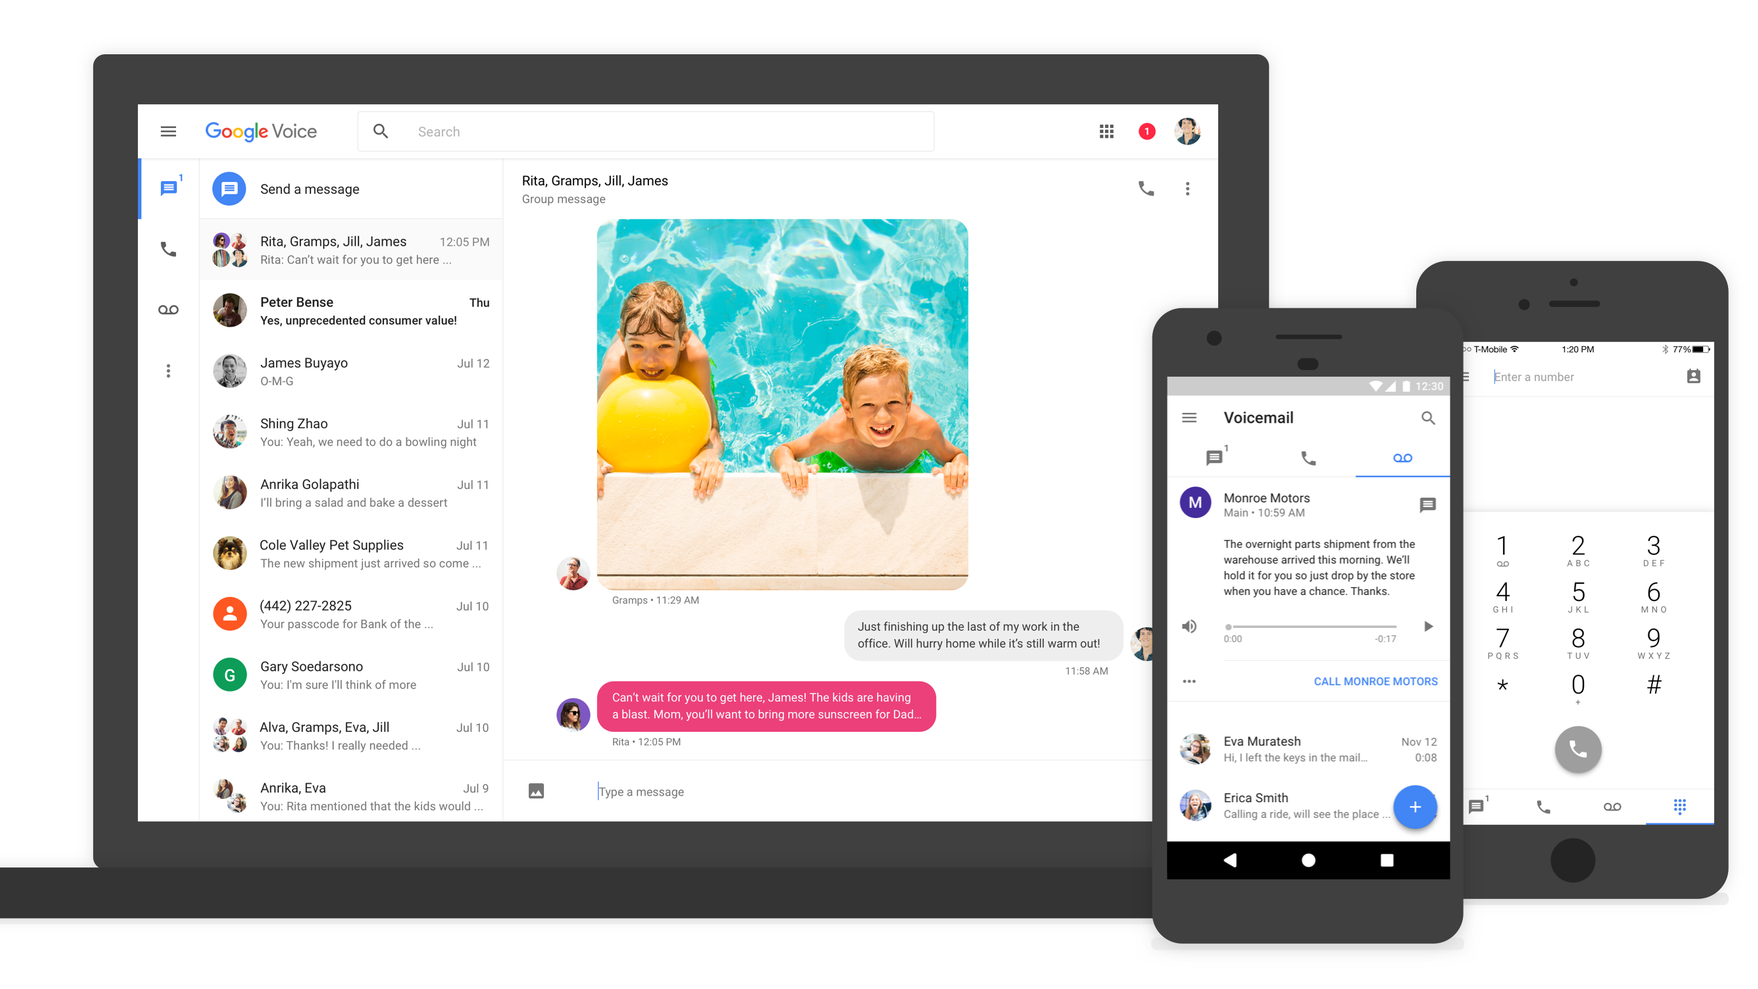 Google Voice Gets Group Texts, MMS And A New Look After Years Of Stagnation